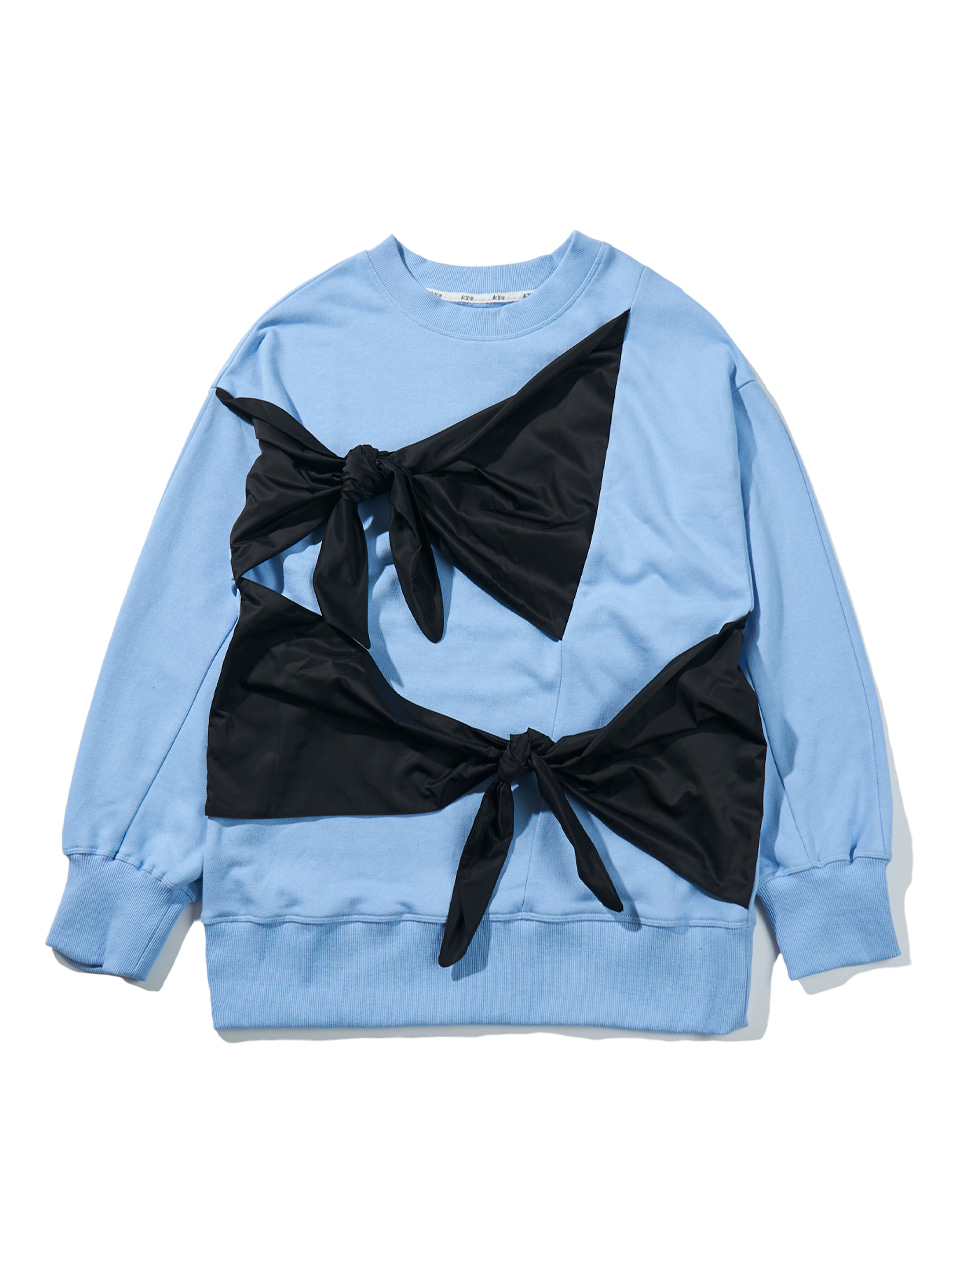 [FW20] TWO RIBBON-DETAIL SWEATSHIRT (KYTZ7RLR10W)